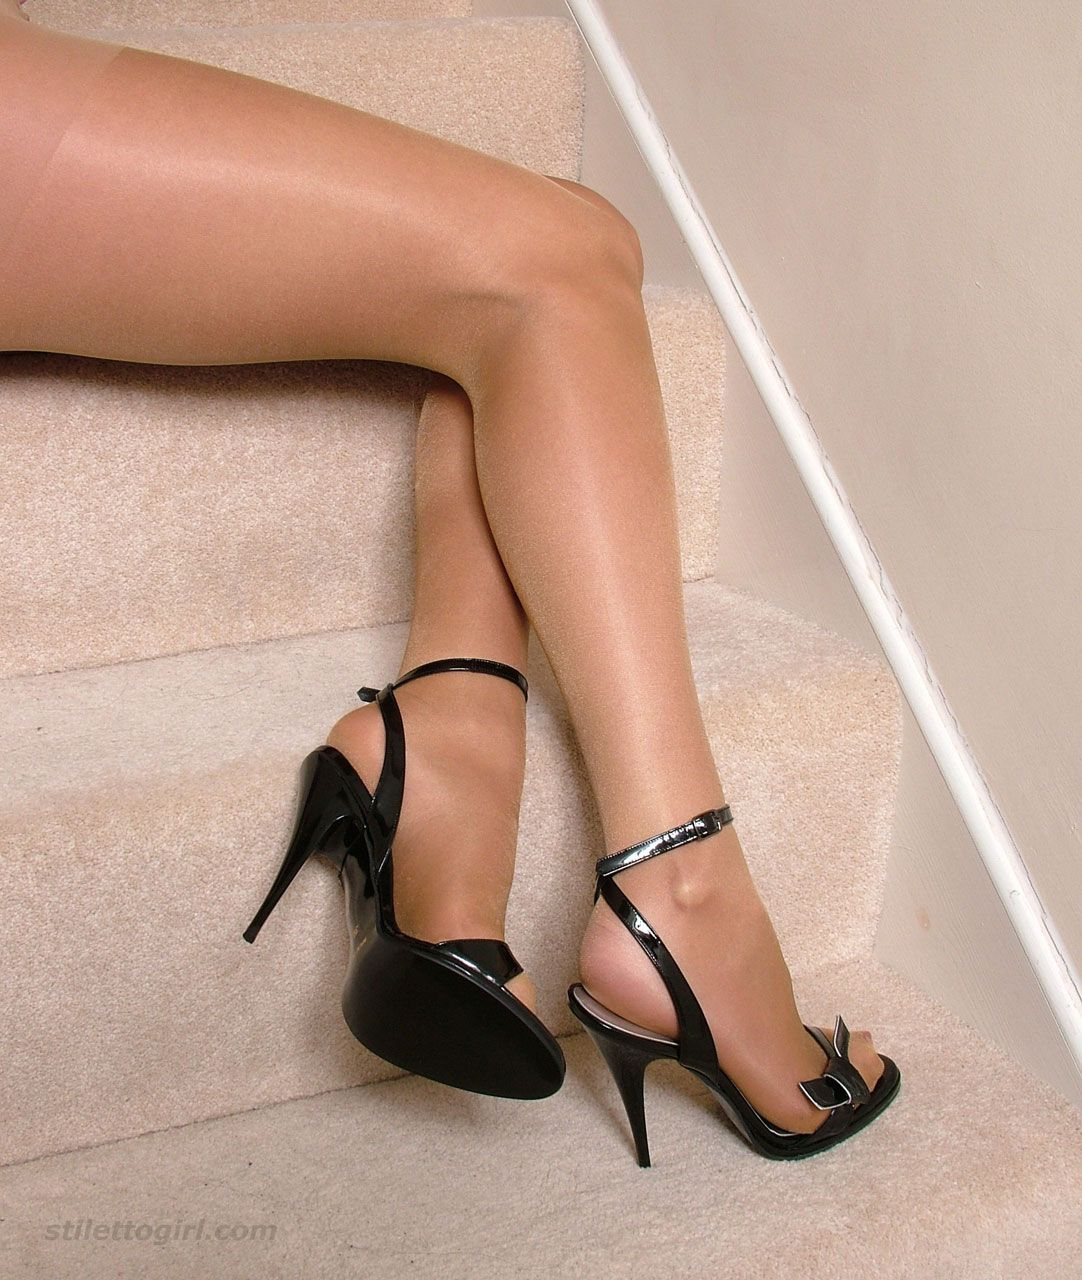 pantyhose and heel